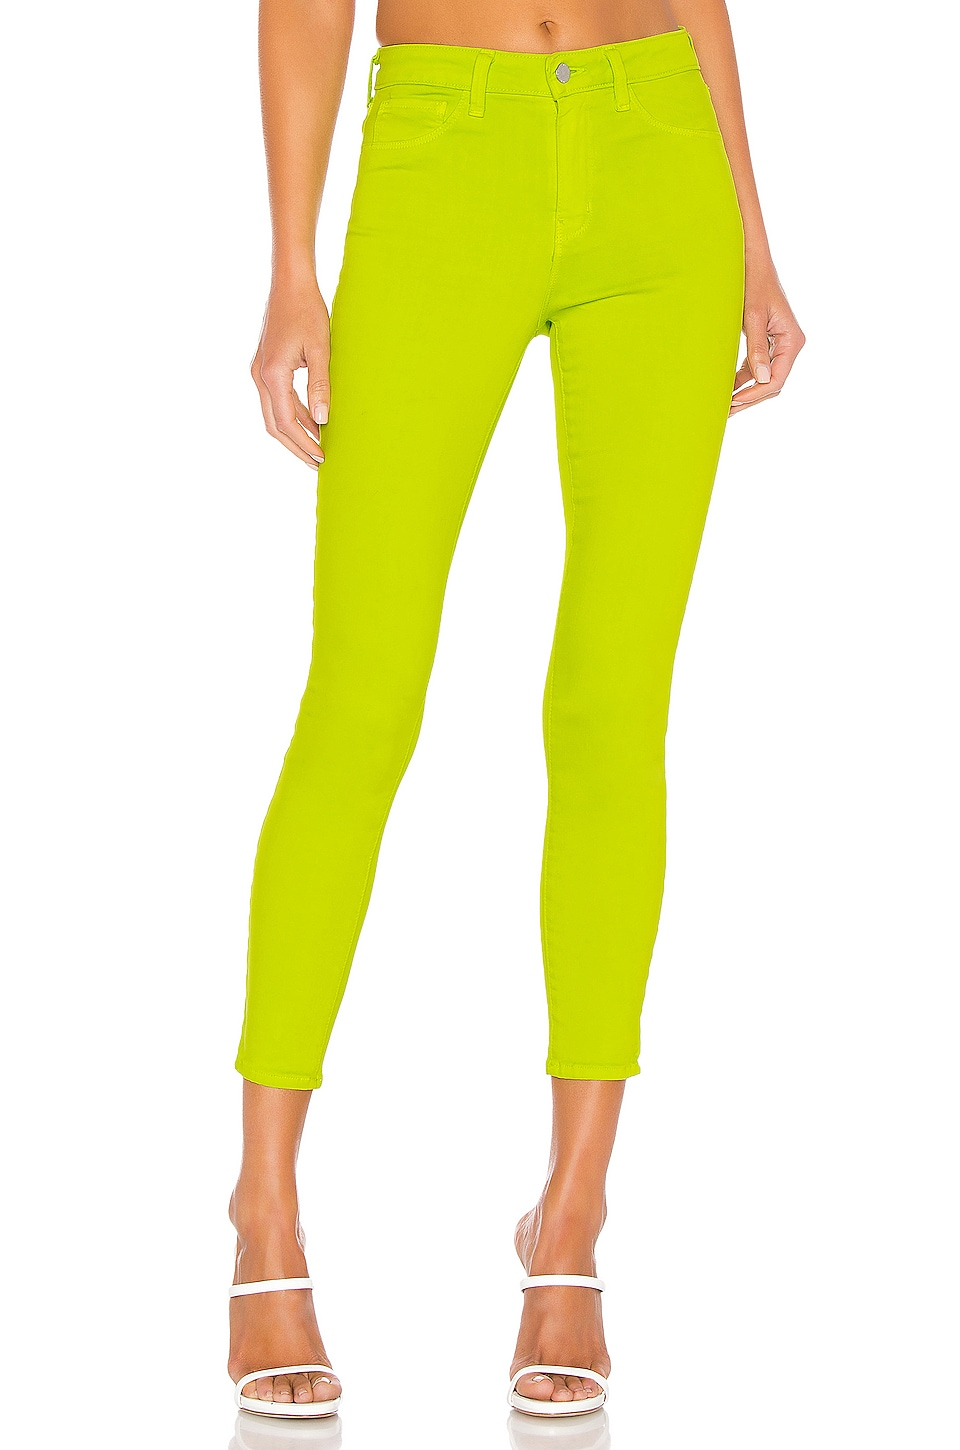 L'AGENCE Margot High Rise Skinny in Chartreuse